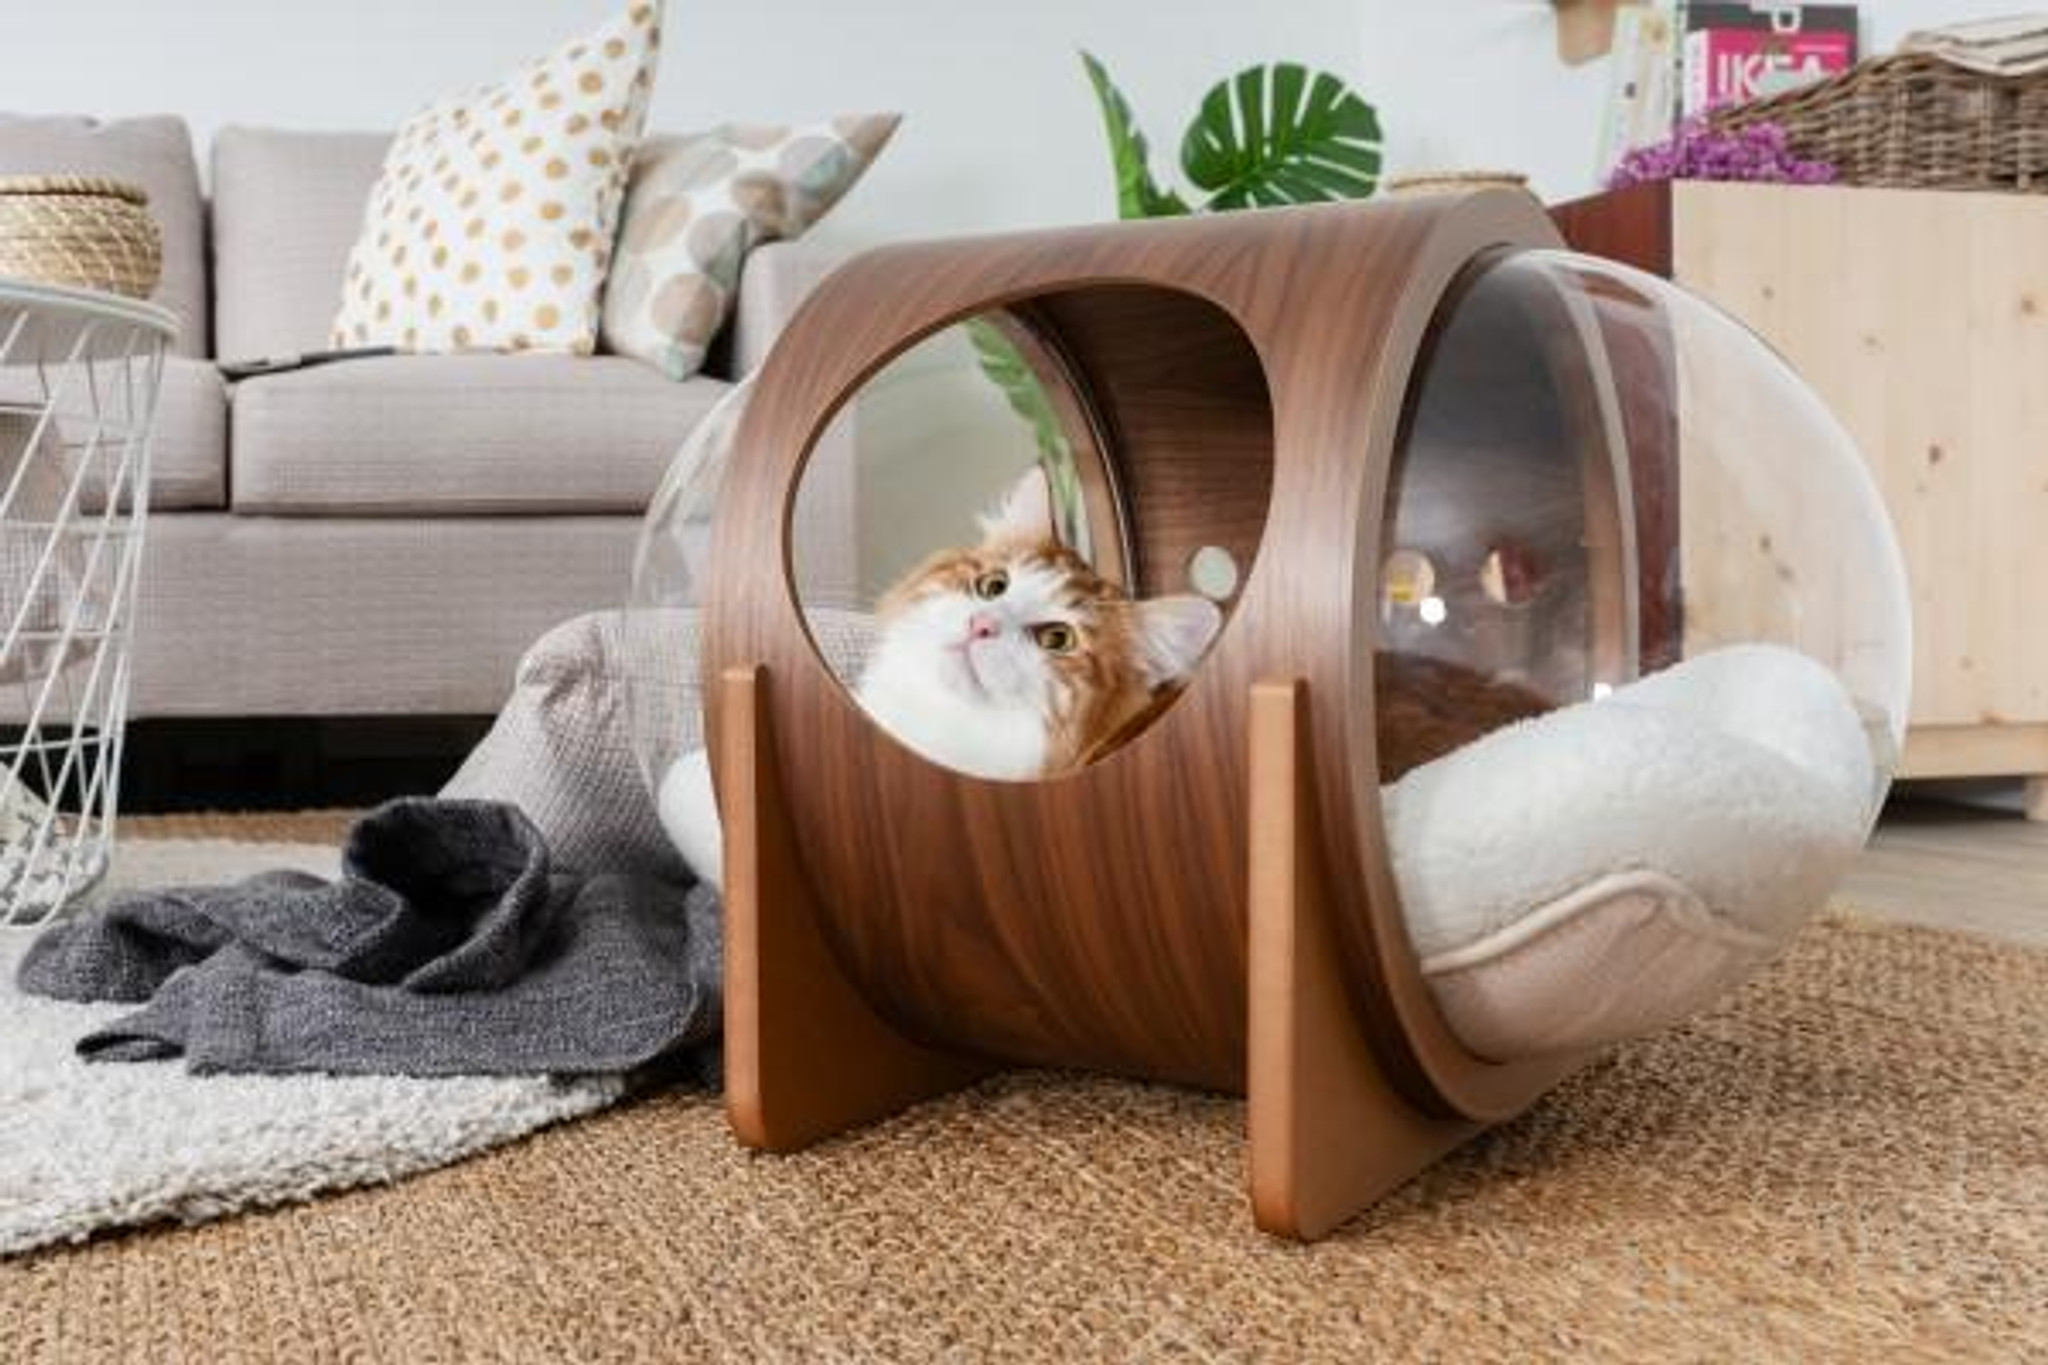 clear acrylic cat perch with clear acrylic lucite plastic window bubbles doors wood round cool modern hip pet furniture bed house